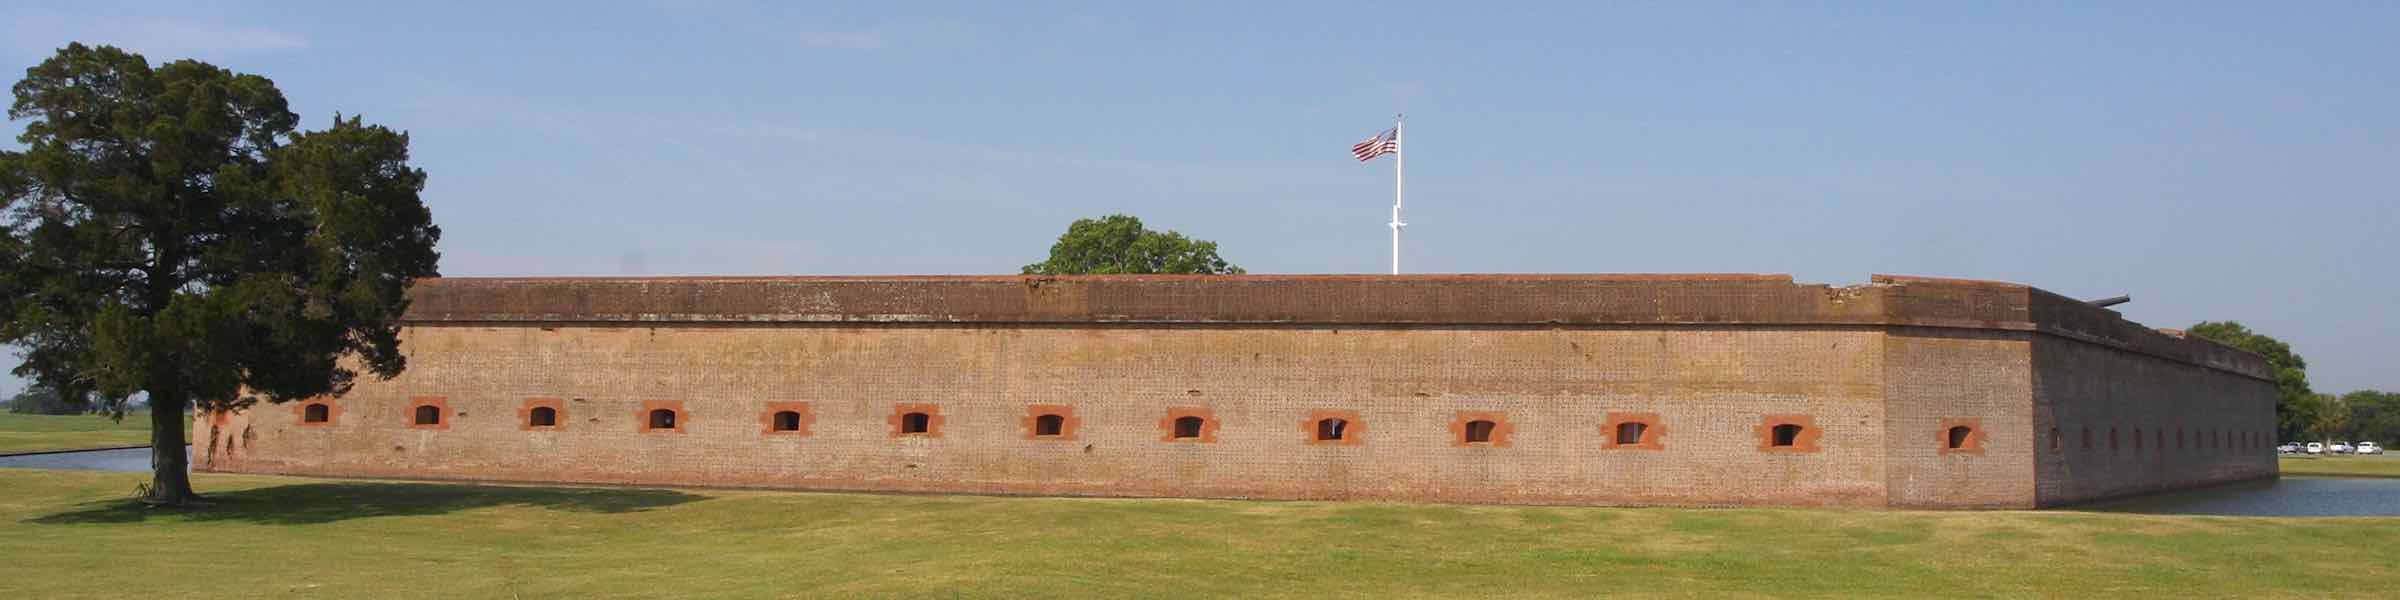 Outer walls and moat of Fort Pulaski National Monument.